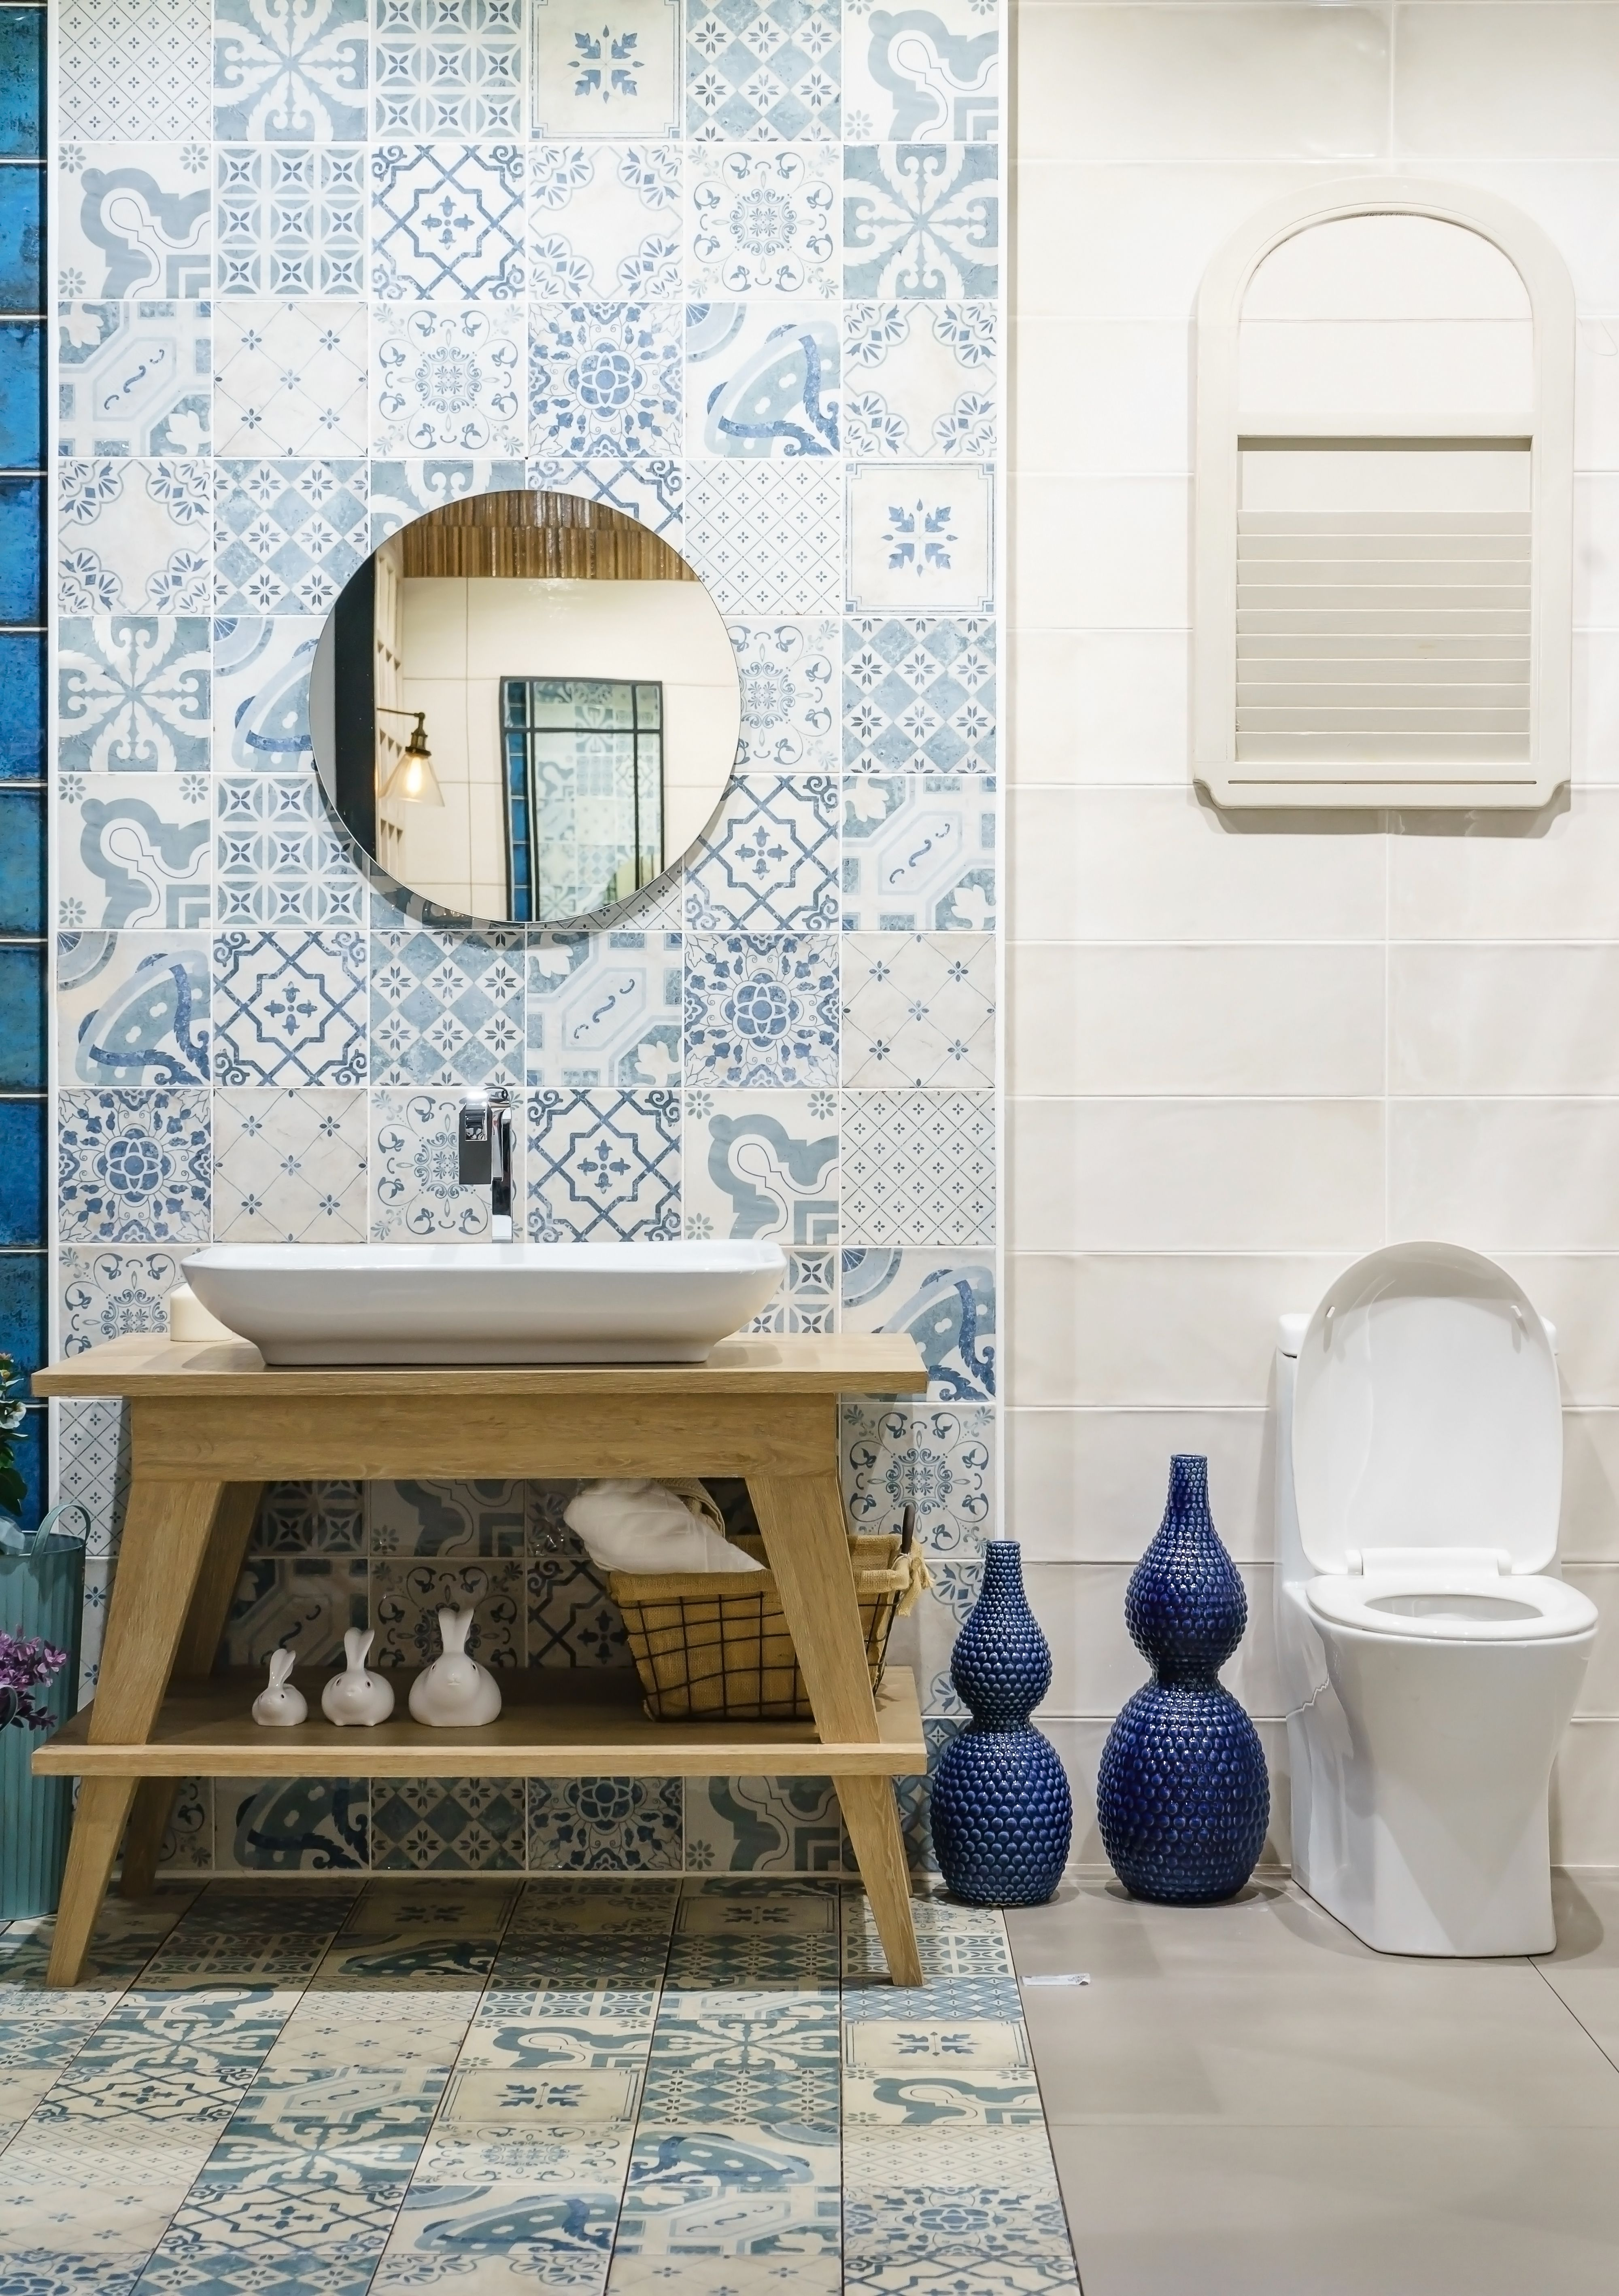 Loving the vintage look with these pretty patterned bathroom tiles ...